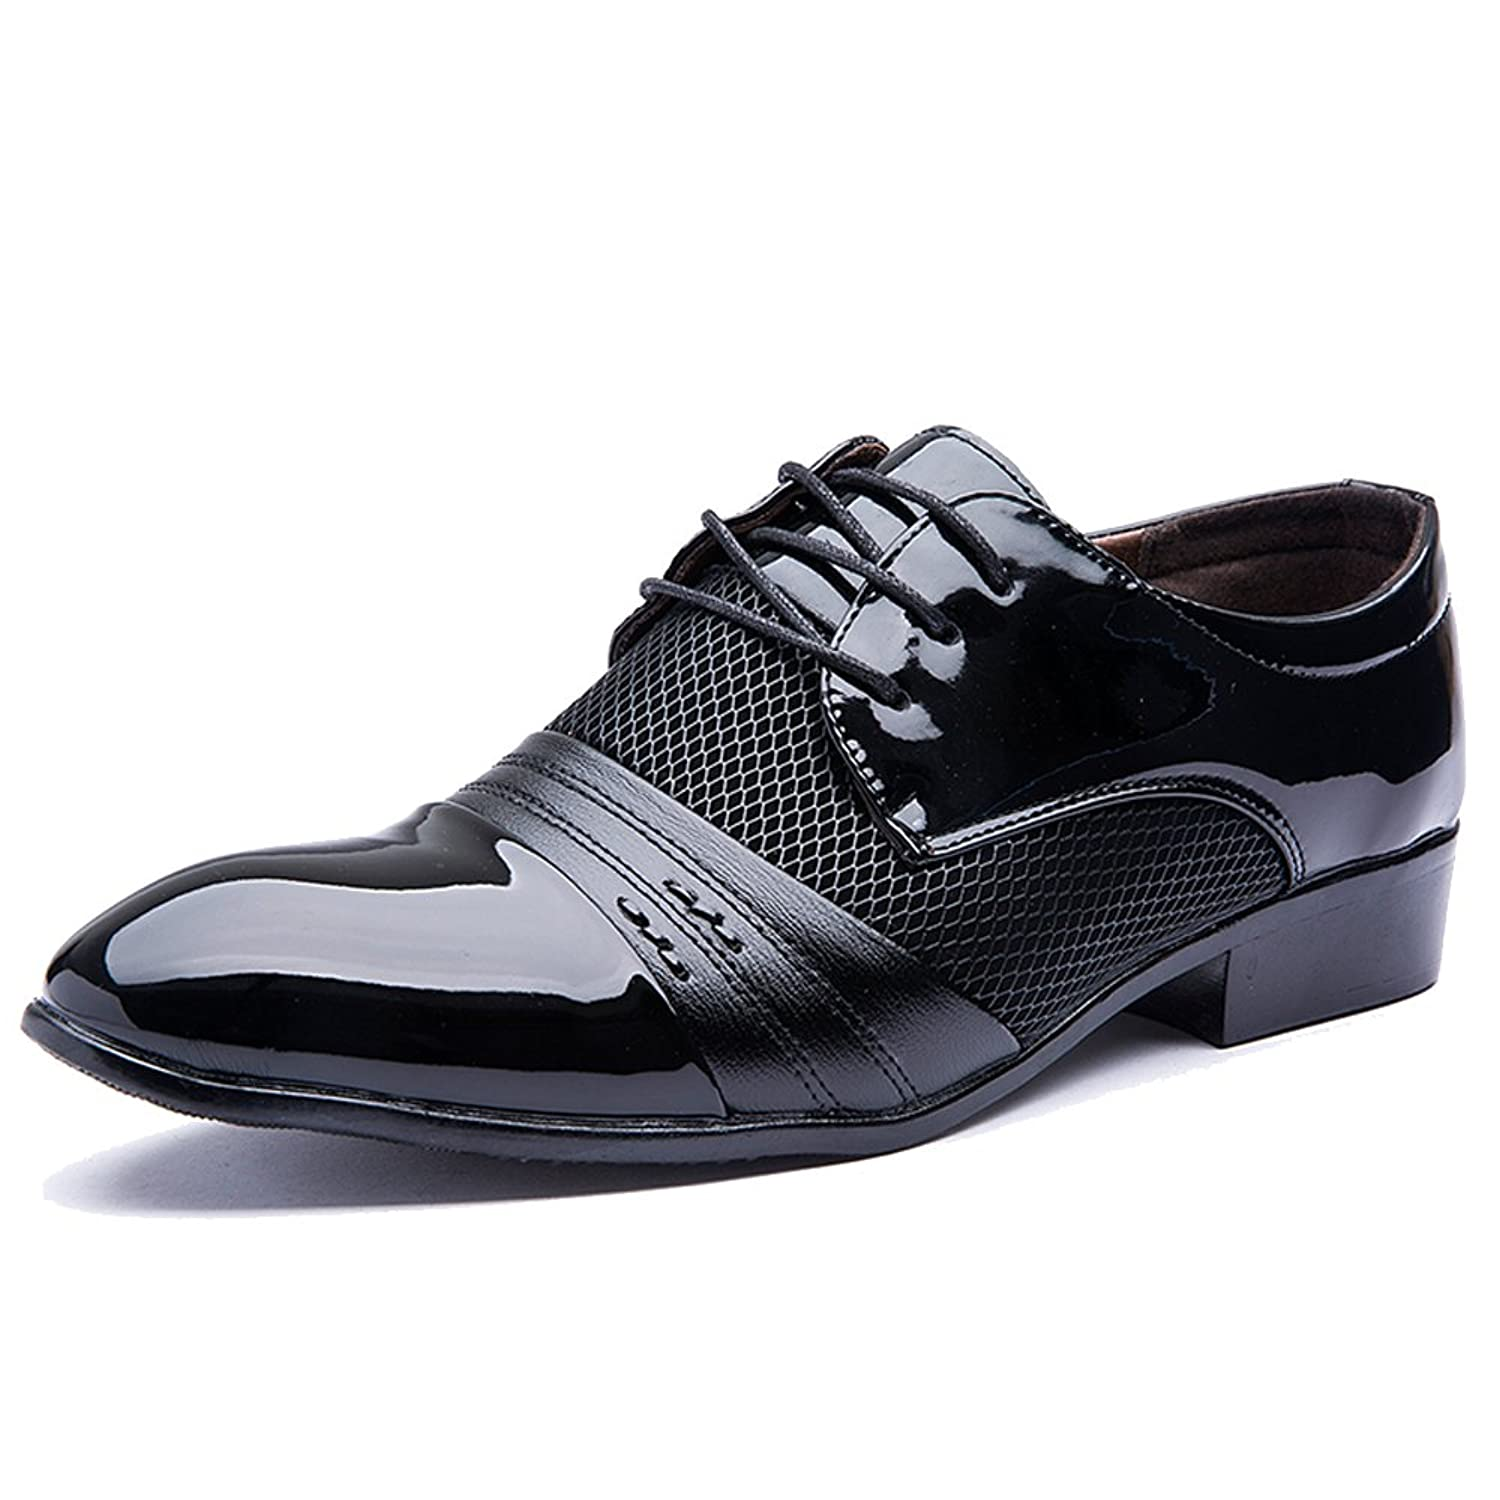 Mens Black Dress Shoes Amazon